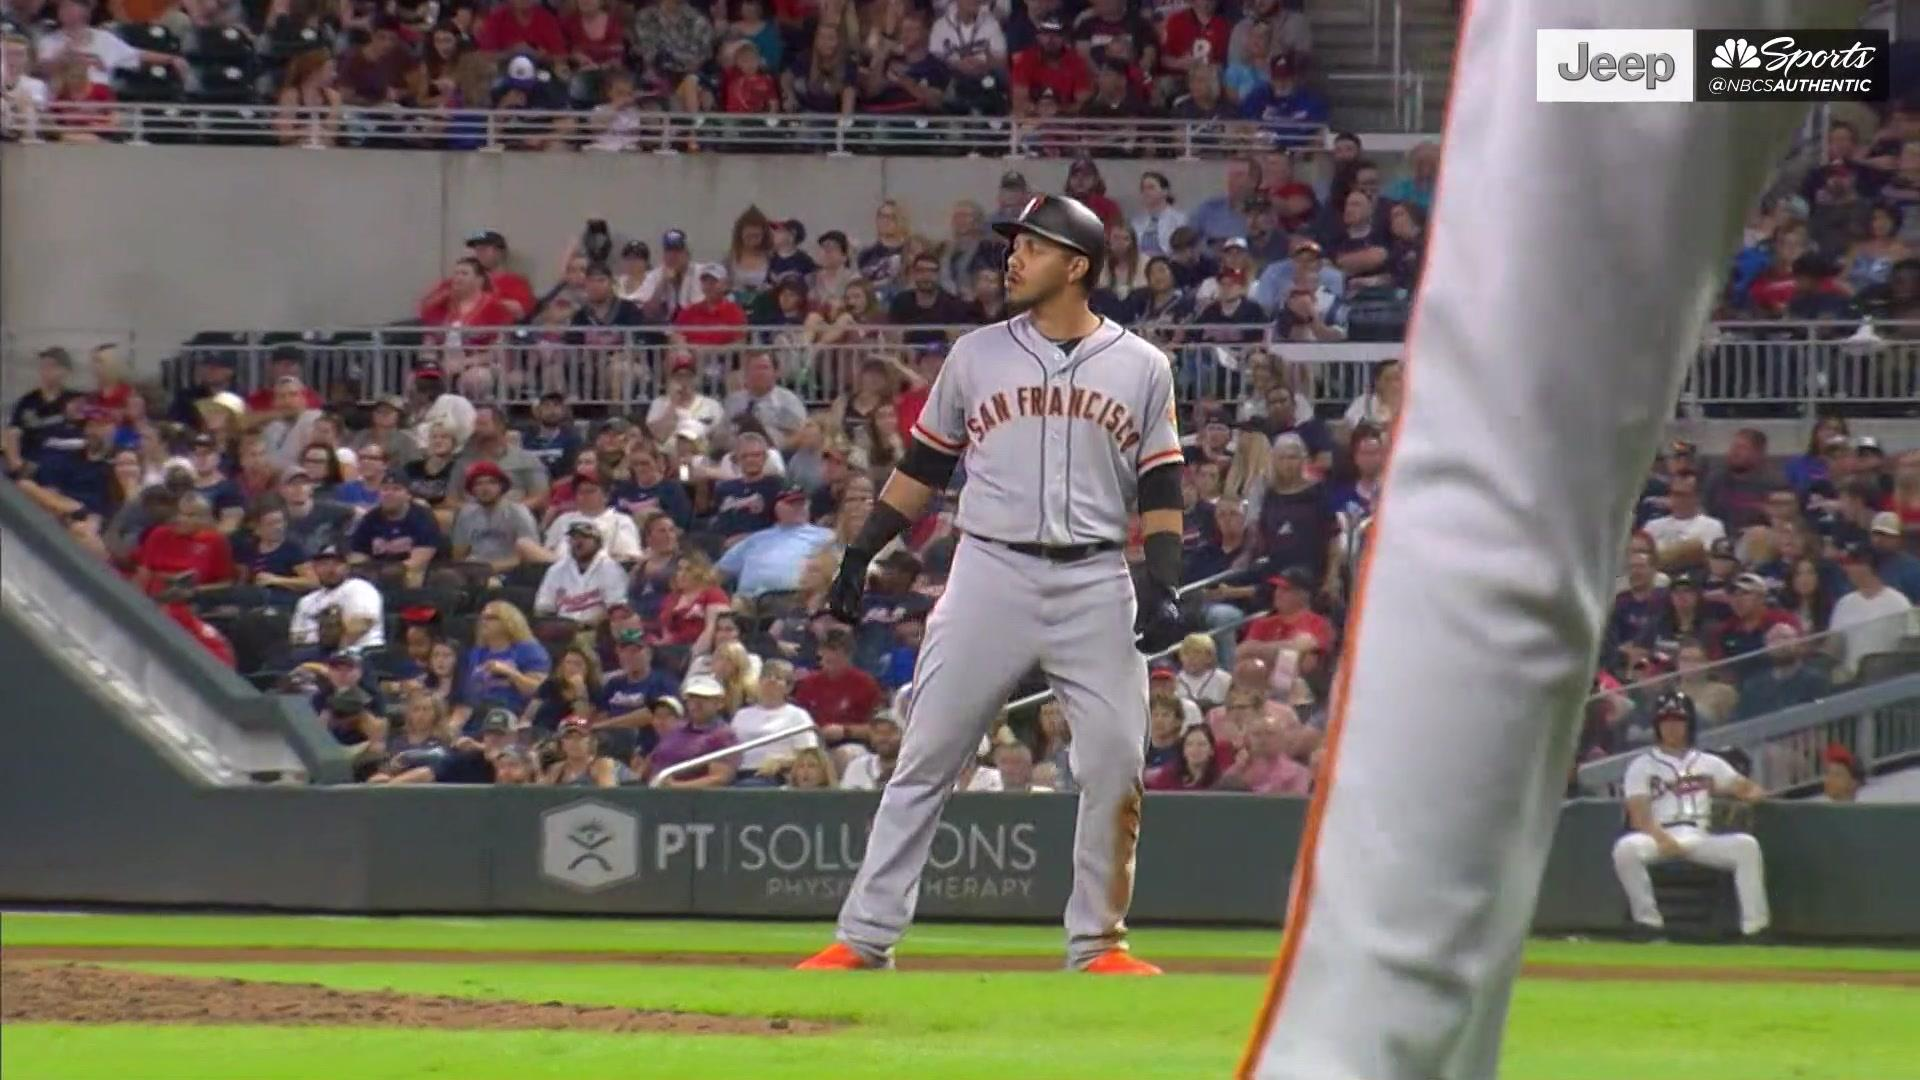 Drive of the Game: Cristhian Adames' RBI single scores lone Giants'